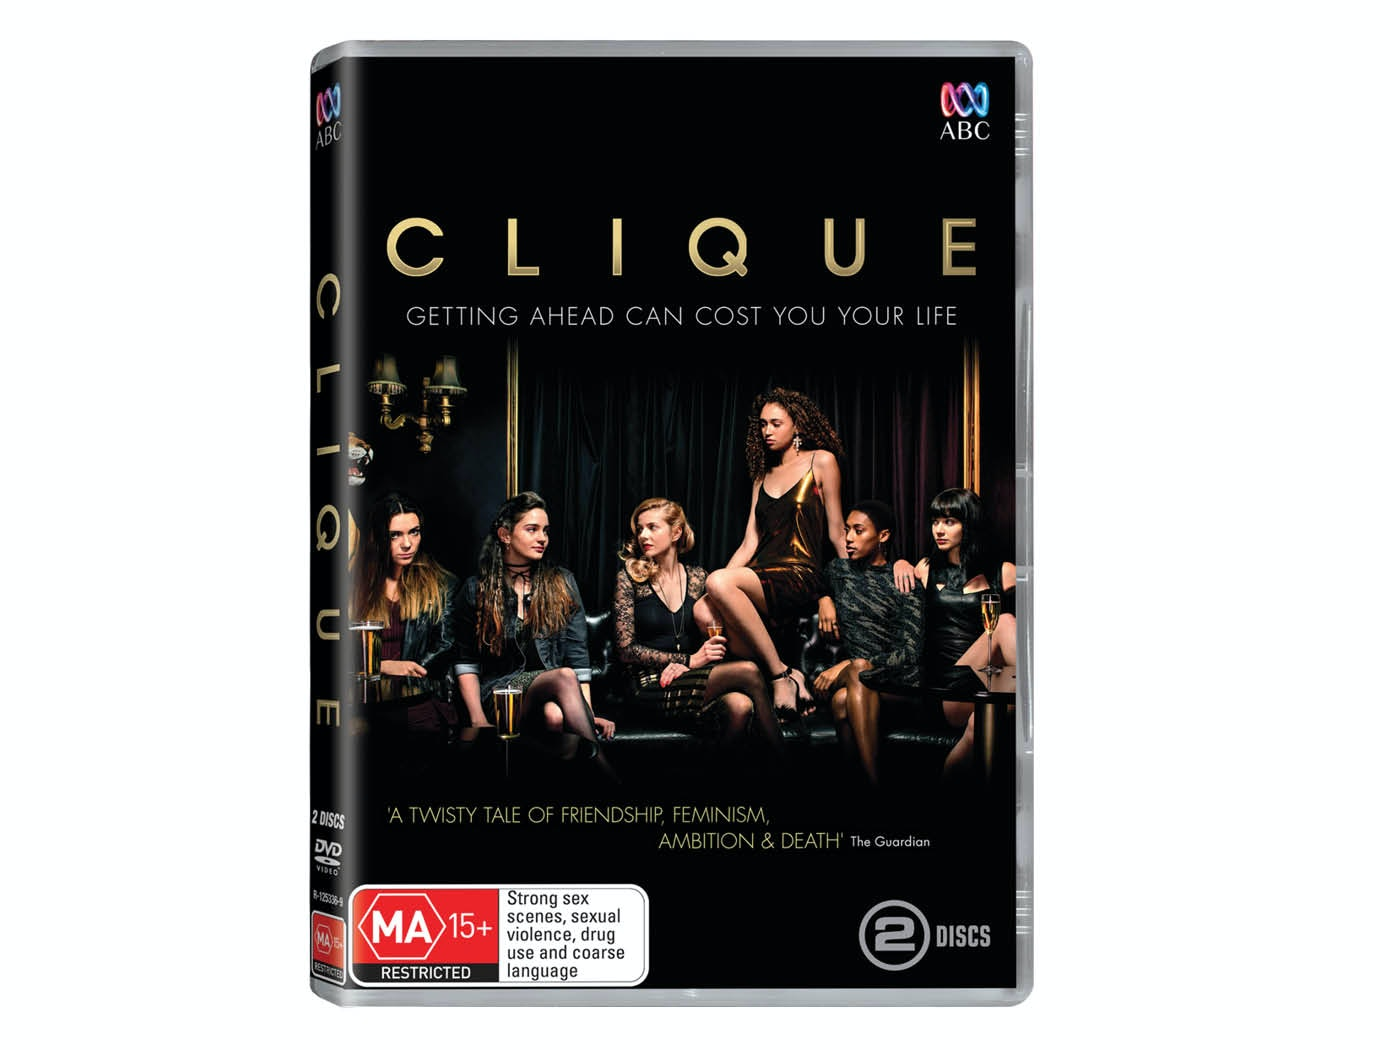 Clinque DVD sweepstakes